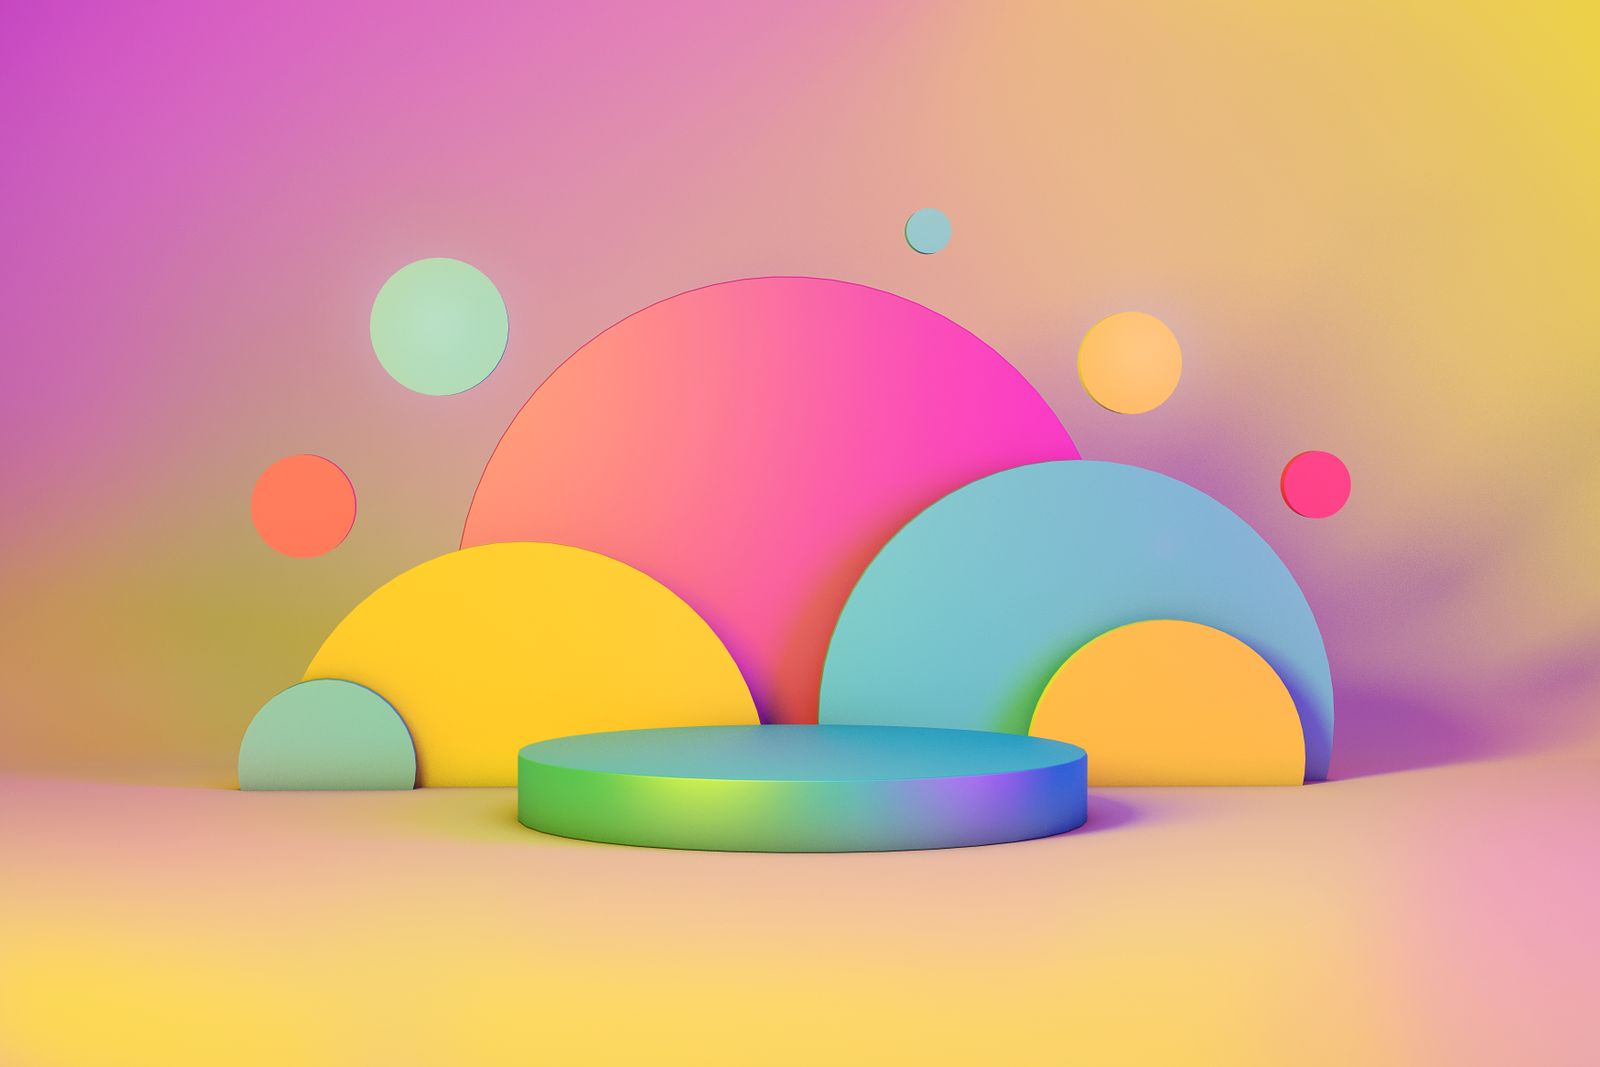 Abstract Geometric 3D Rendering Circle Cylinder Background. Minimalism Vibrant Still Life Style